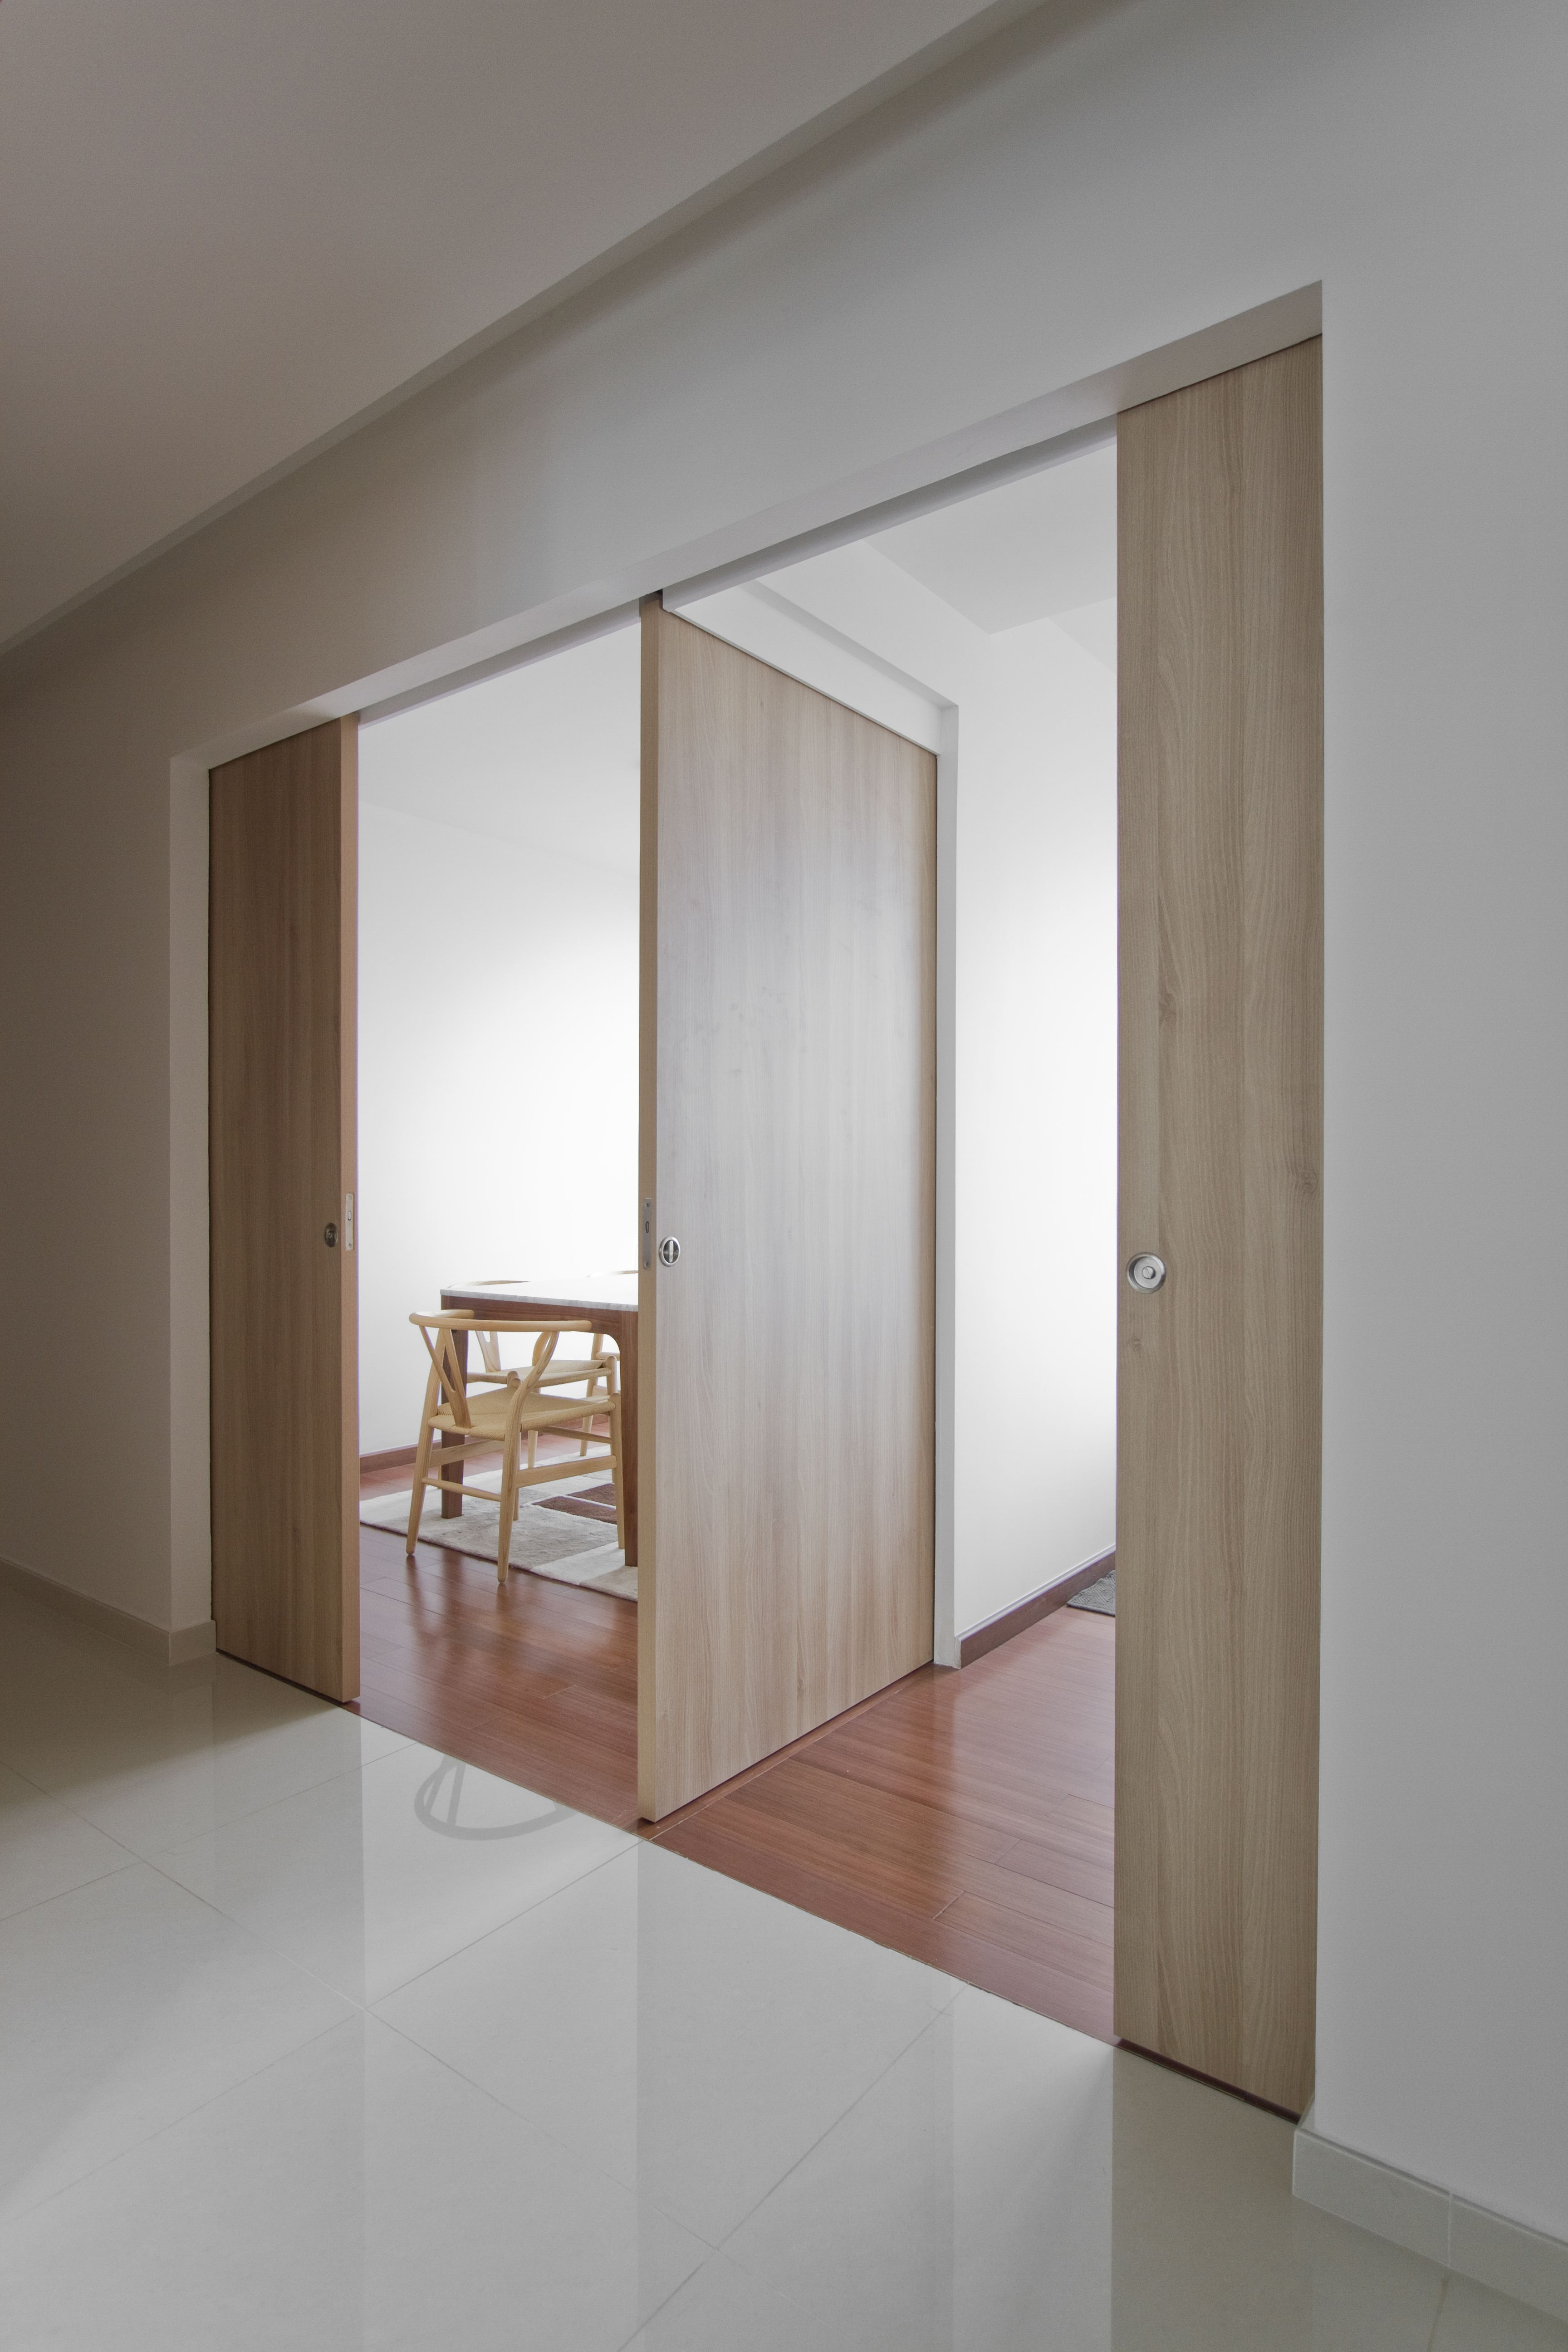 3 way sliding door system for a flexible demarcation of the dining room guest